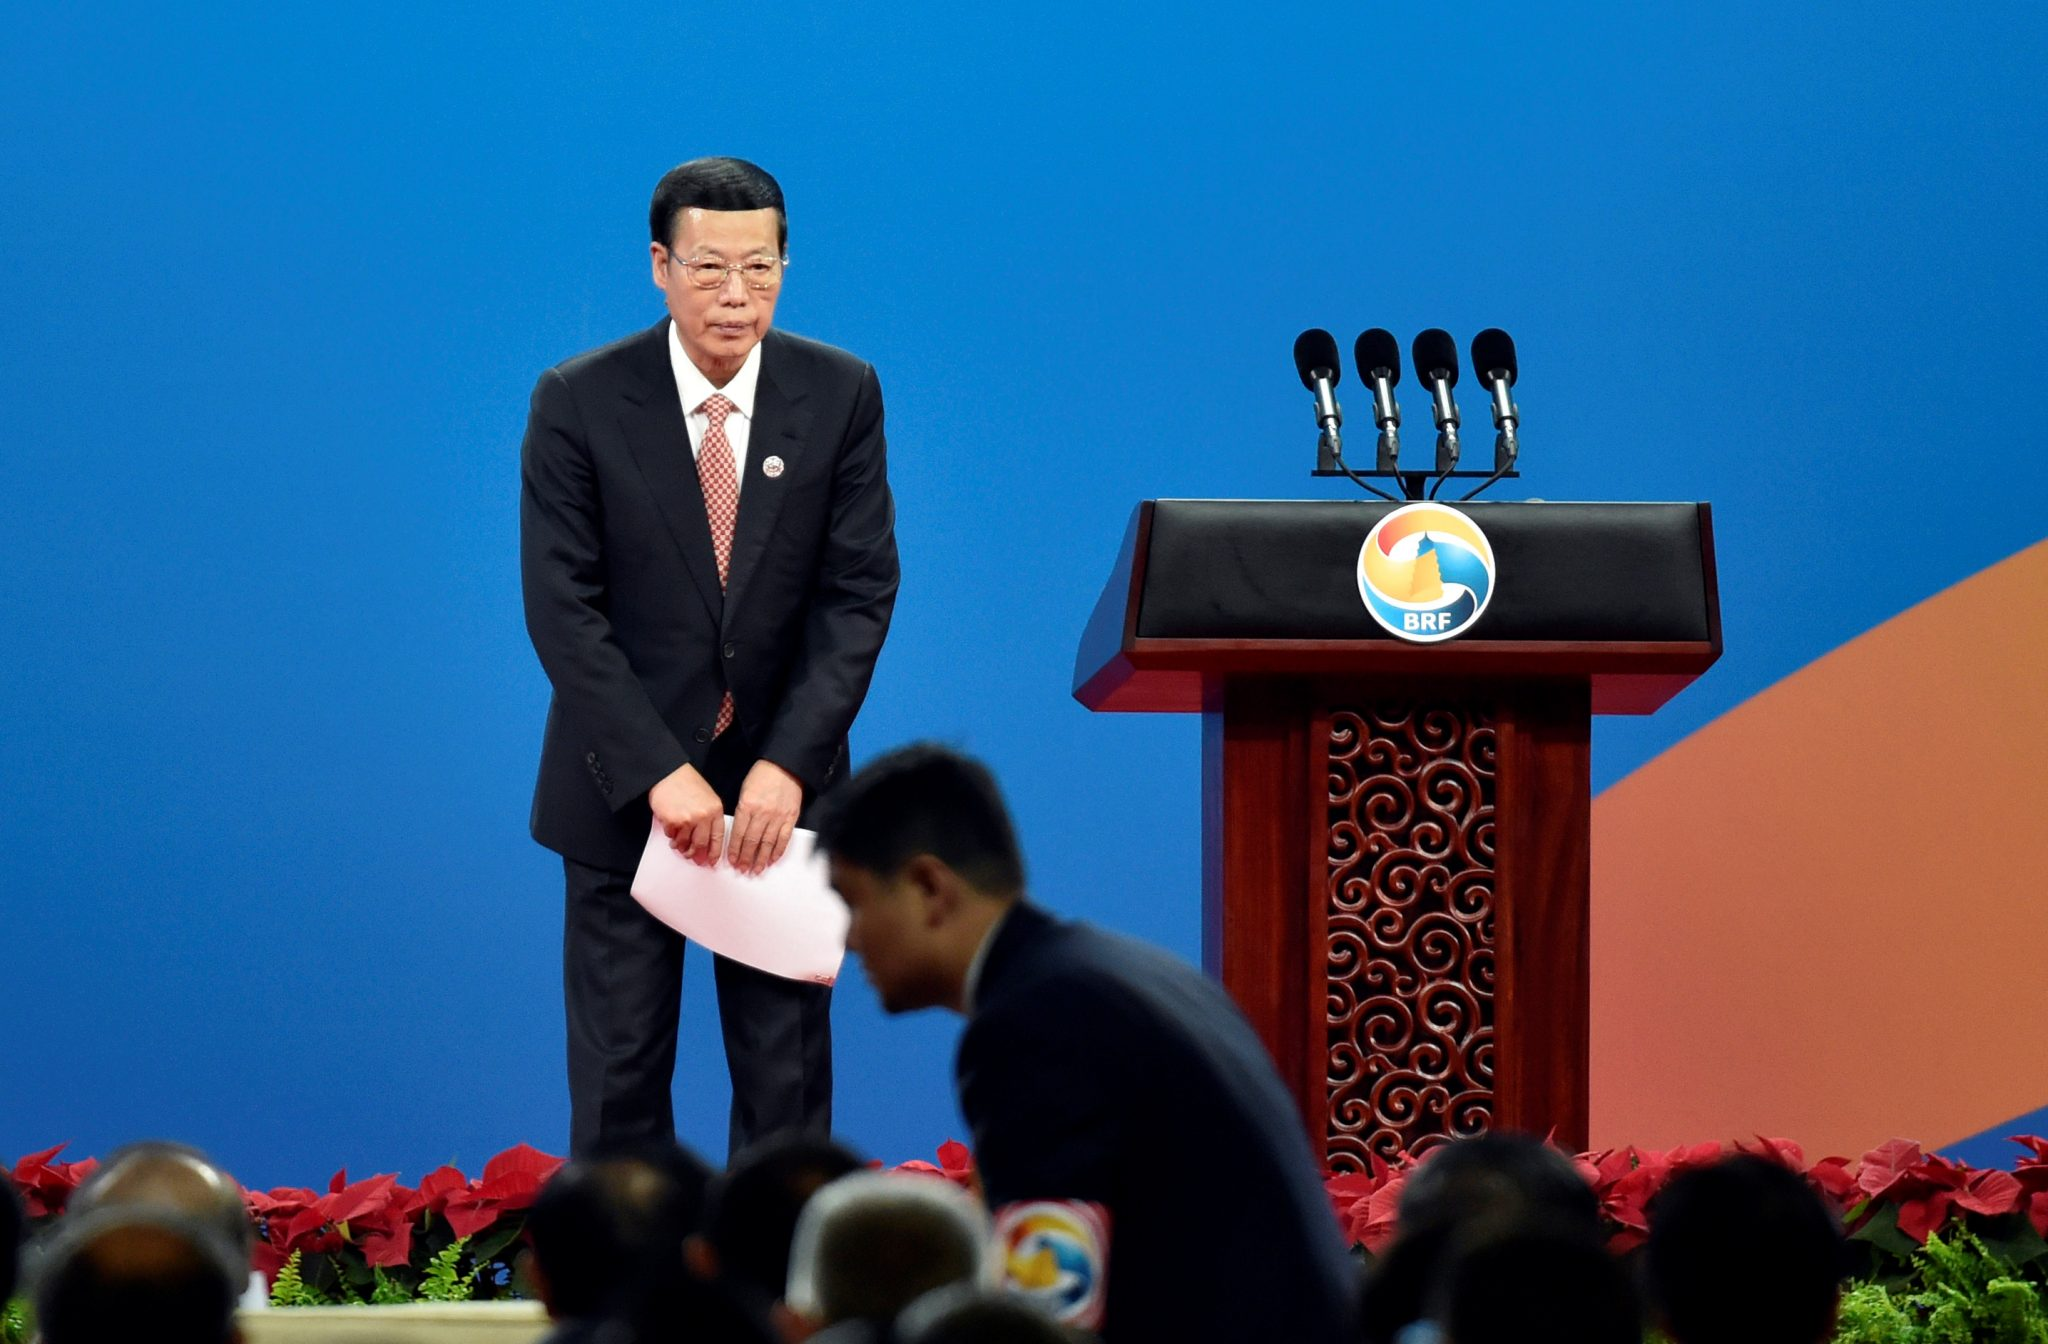 The next phase of China's trade and industry strategy